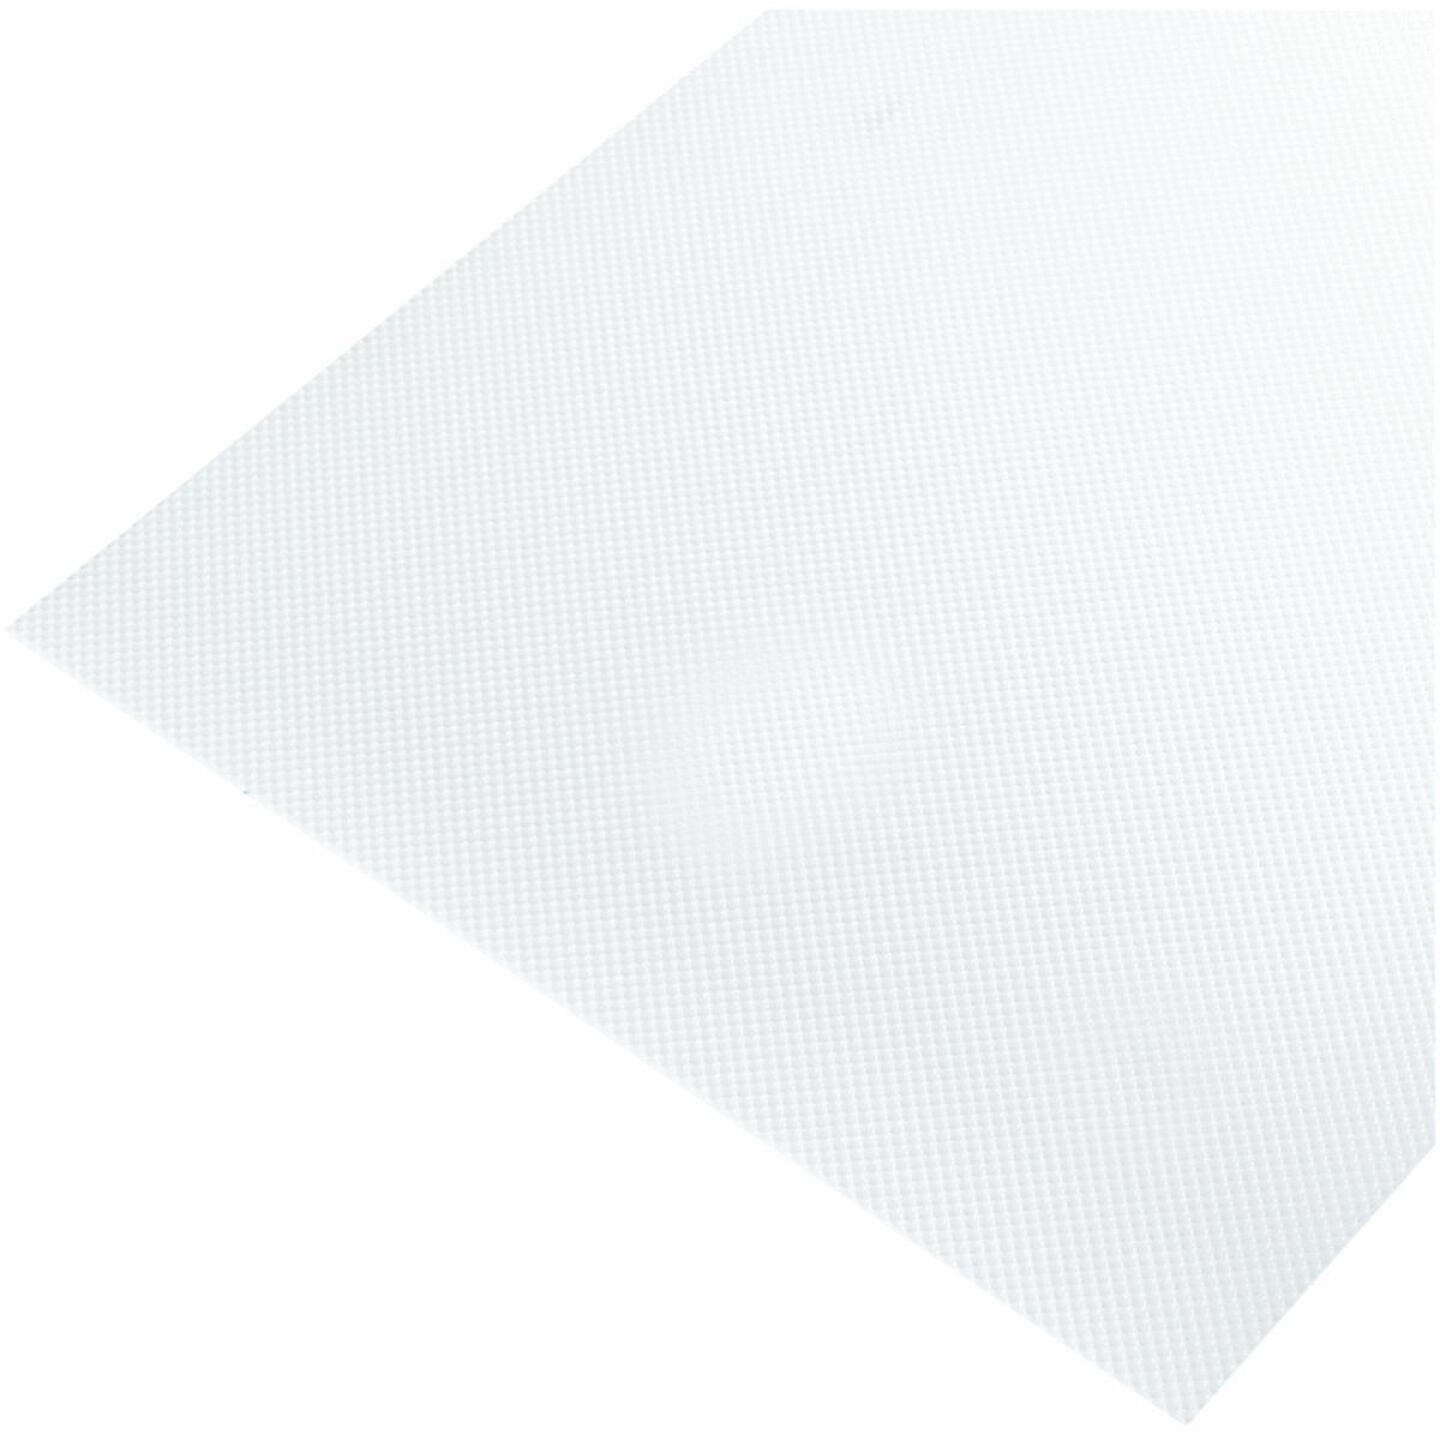 Plaskolite 2 Ft. x 4 Ft. Pattern-12 Prismatic White Acrylic Light Panel Image 1